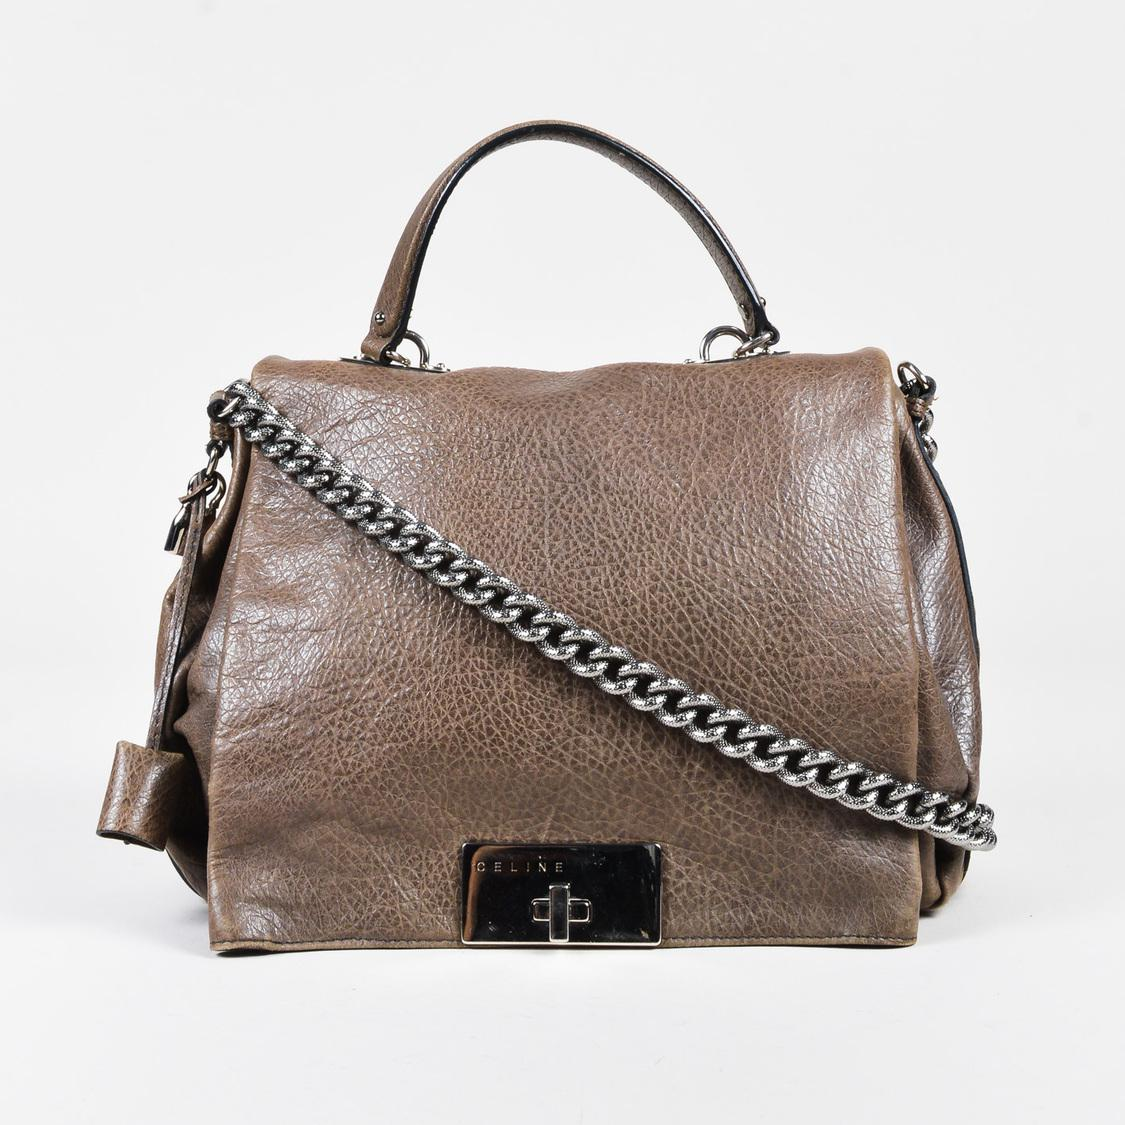 a14a683128d Céline. Women s Brown Pebbled Leather Silver Tone Chain Link